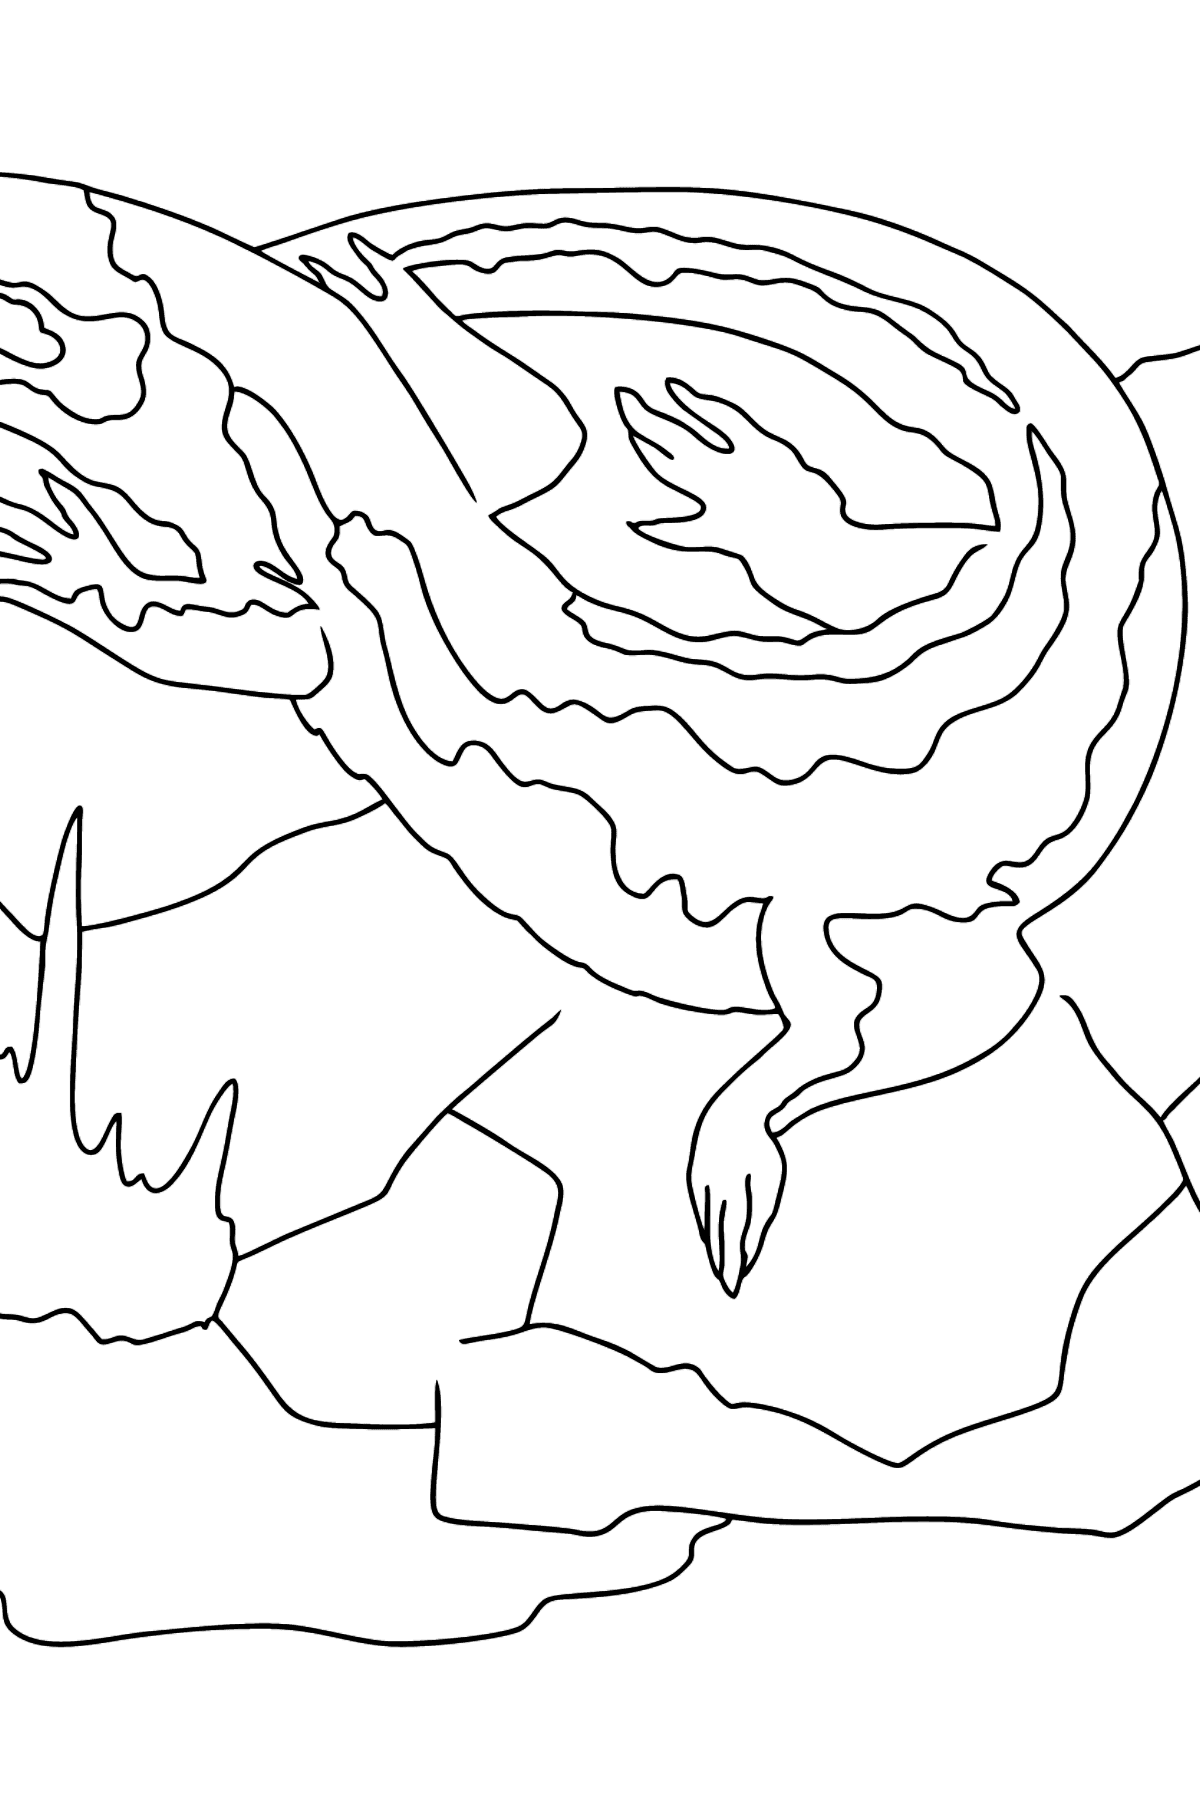 Coloring Page - A Curious Lizard - Coloring Pages for Kids